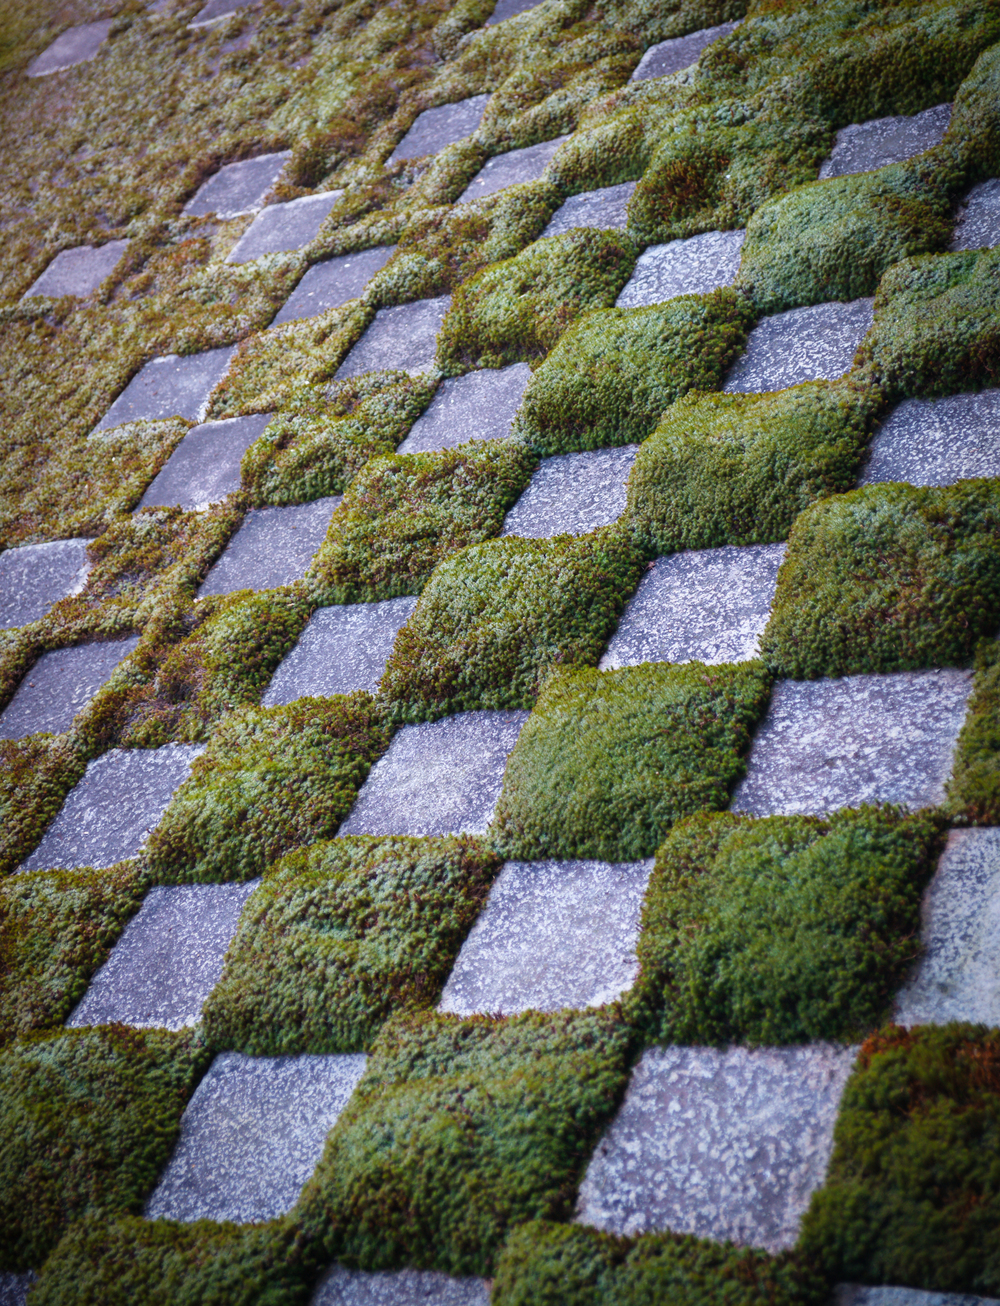 Checkerboard detail at the Rock Garden